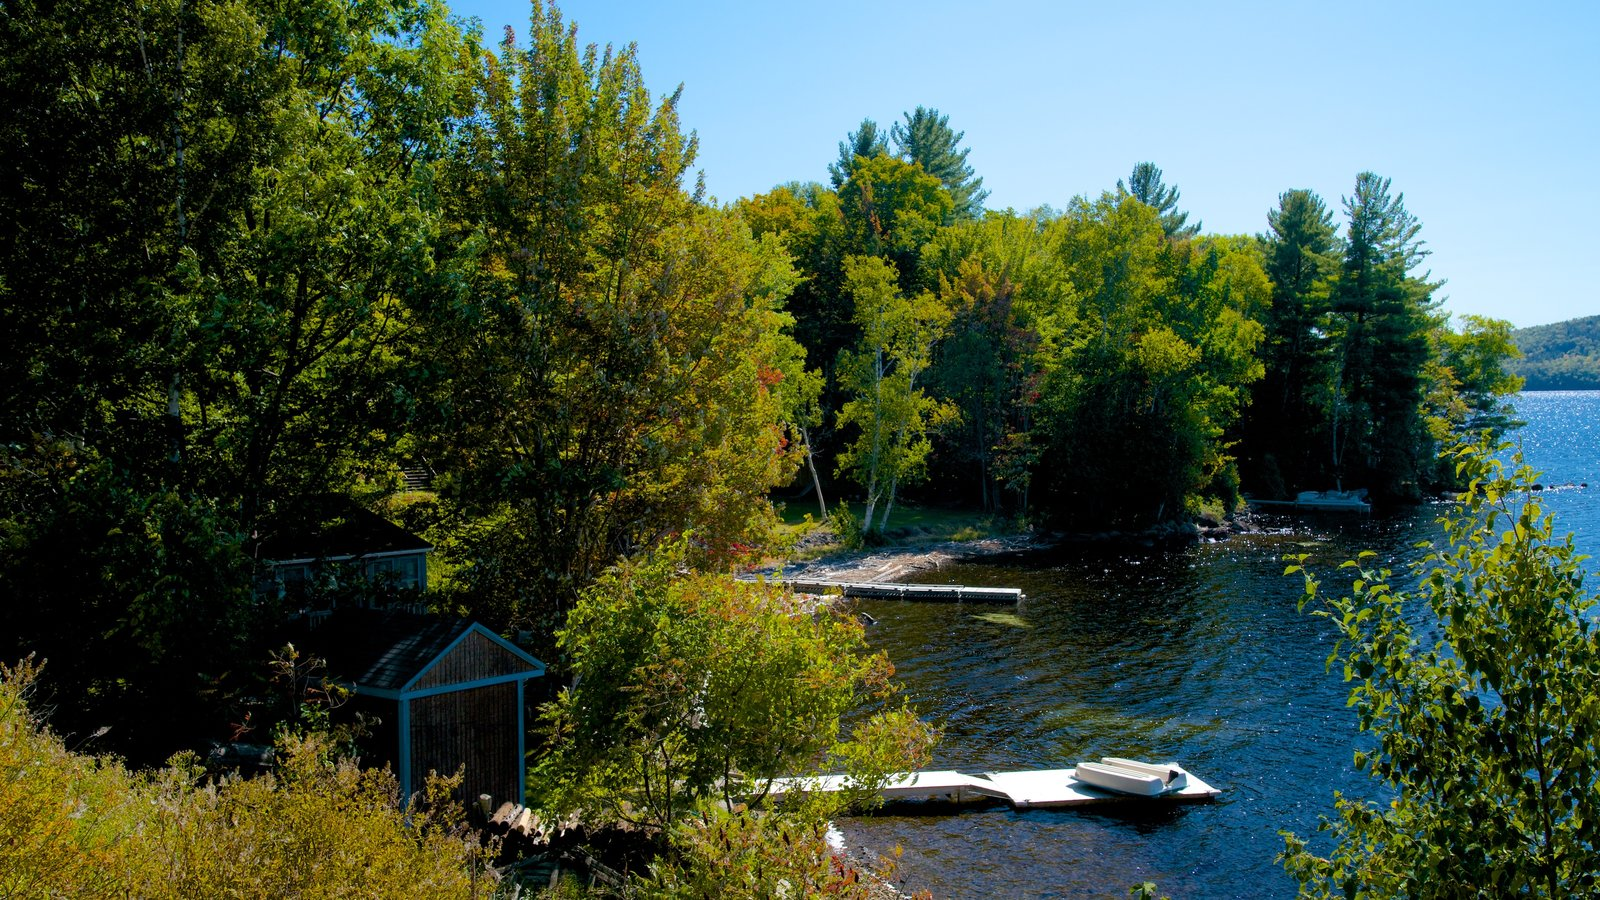 Maine showing forest scenes and a lake or waterhole